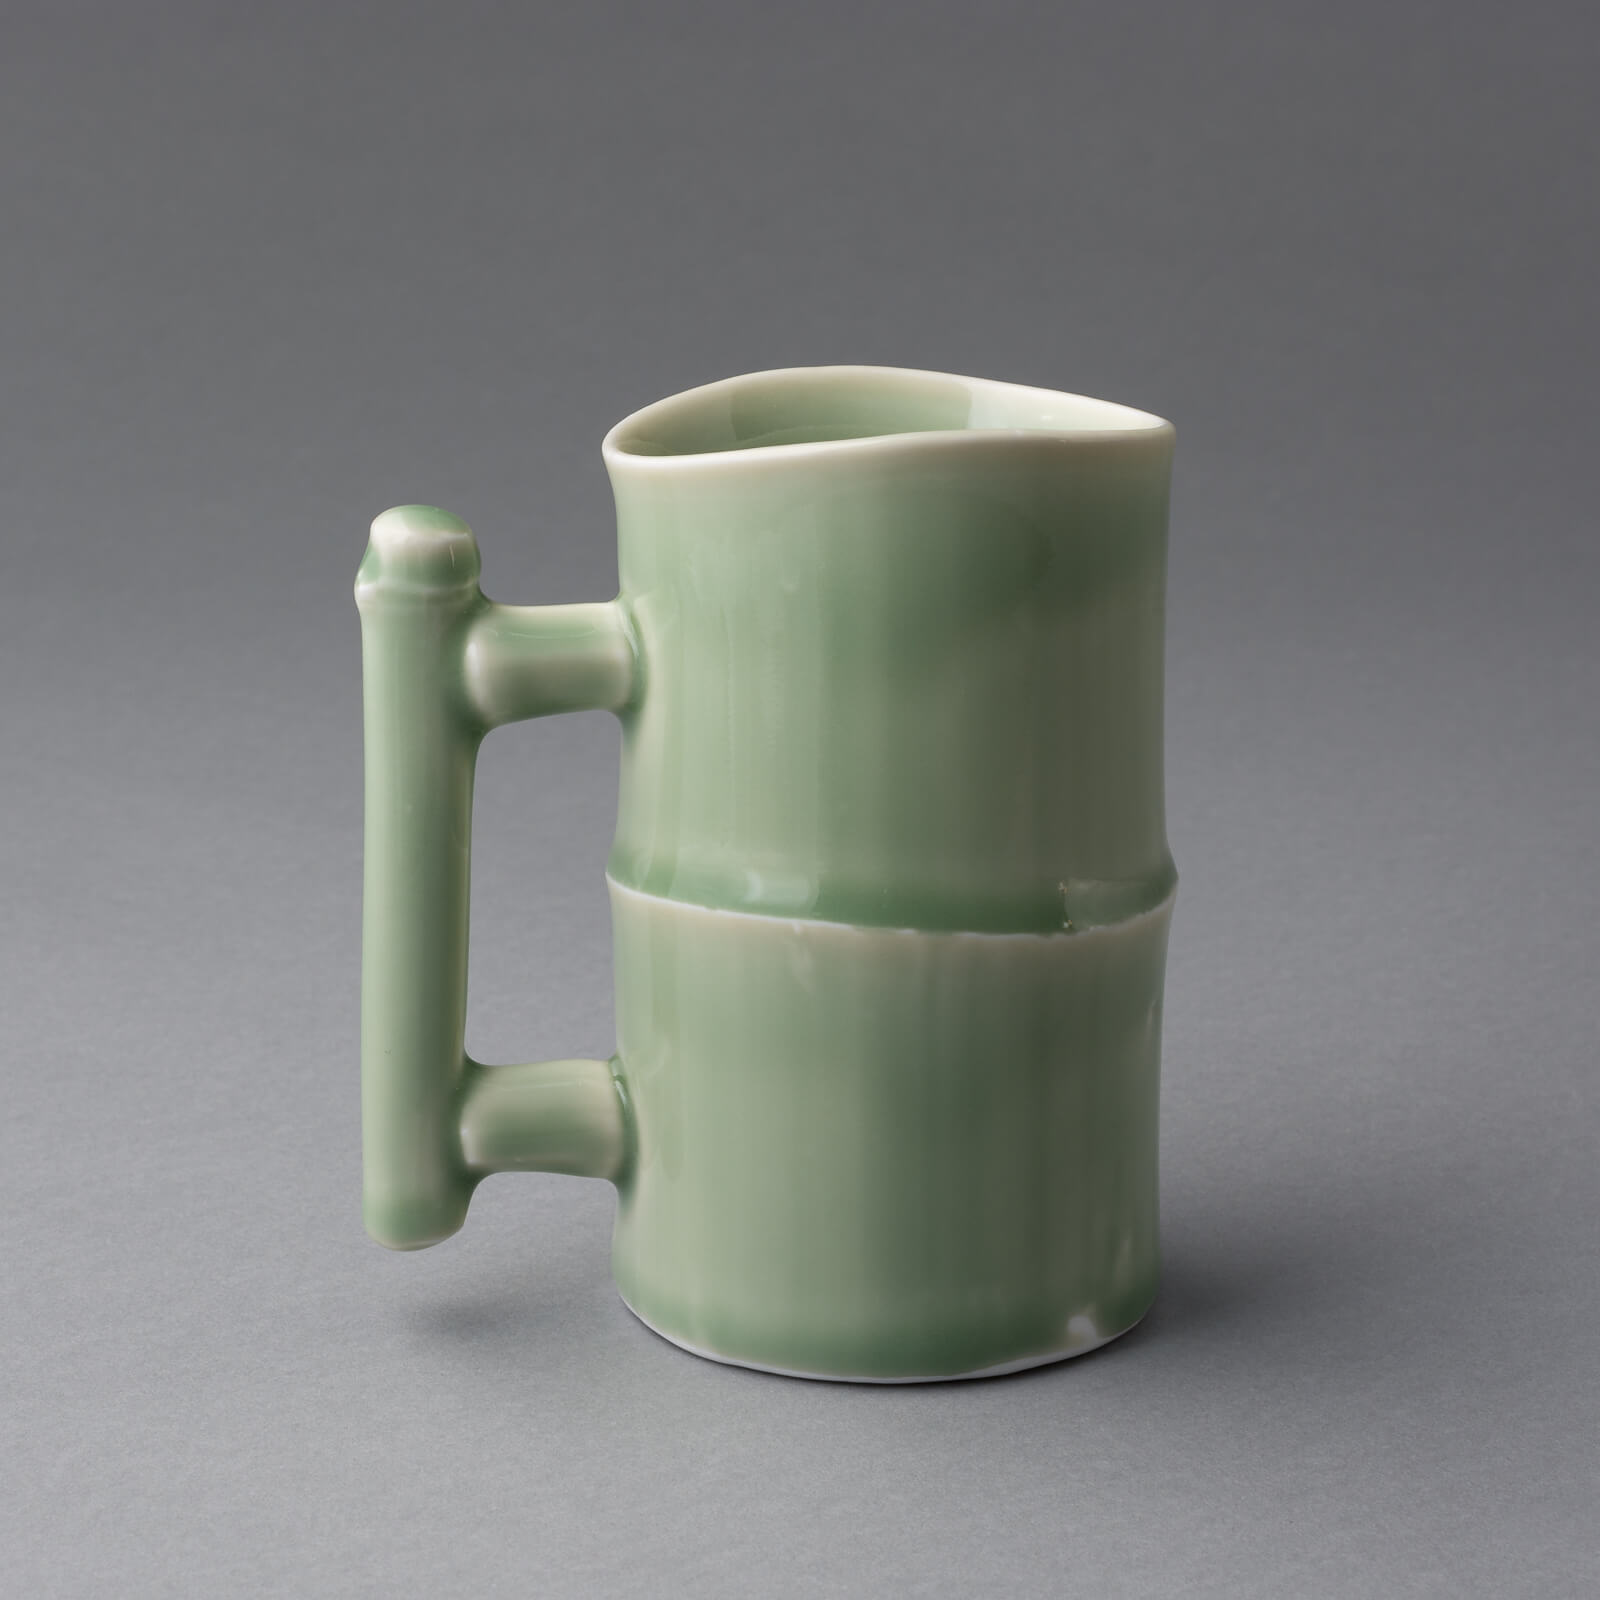 Bamboo cup, Porcelain